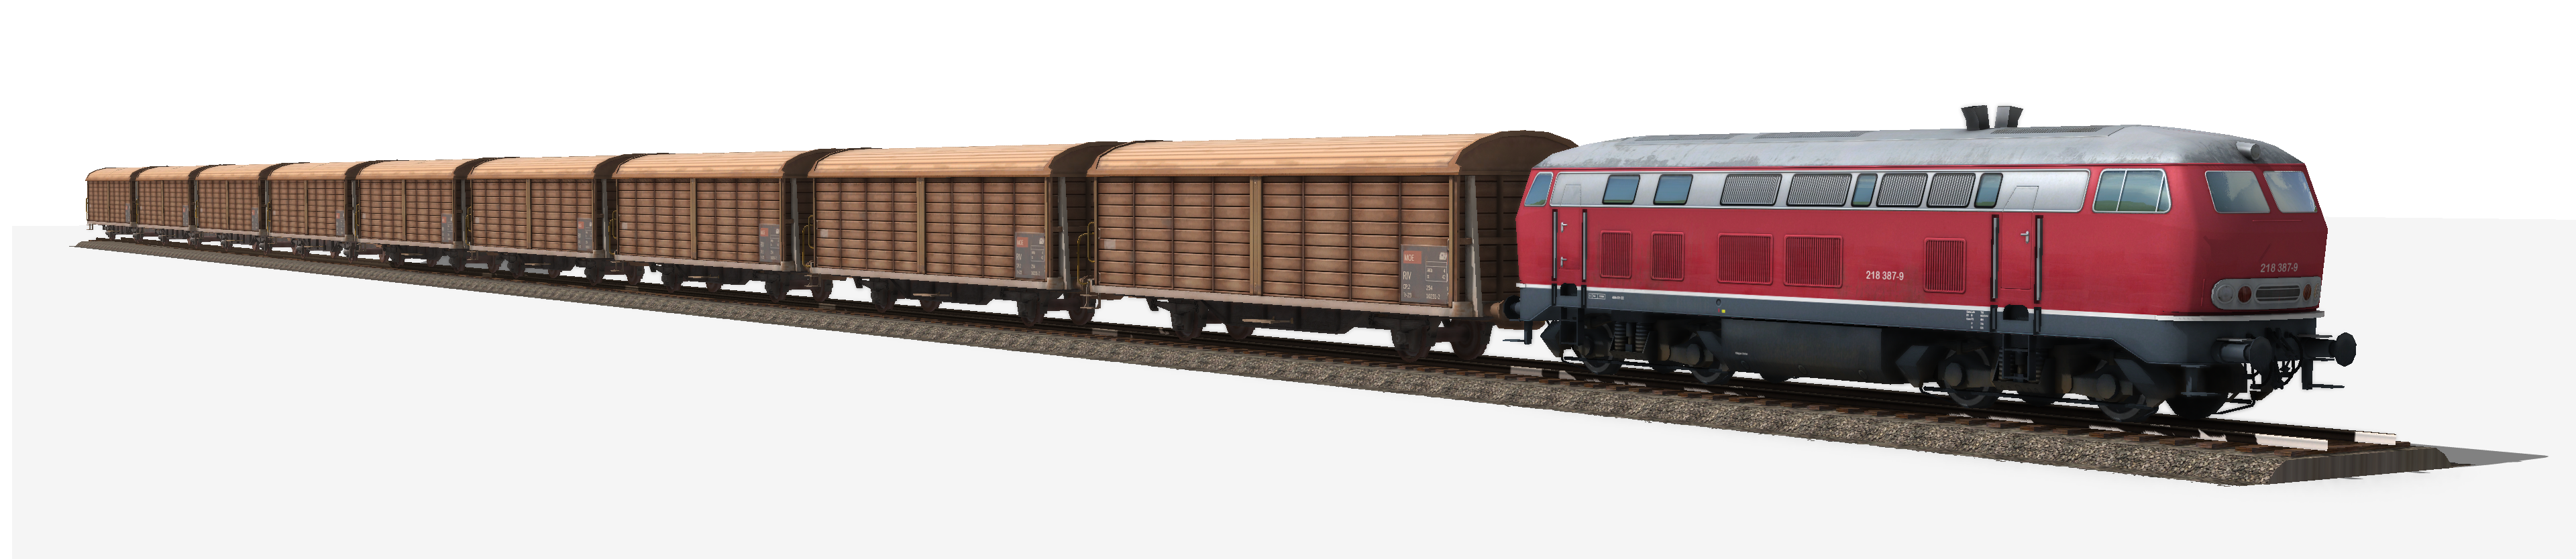 PNG Image Of Train - 48339